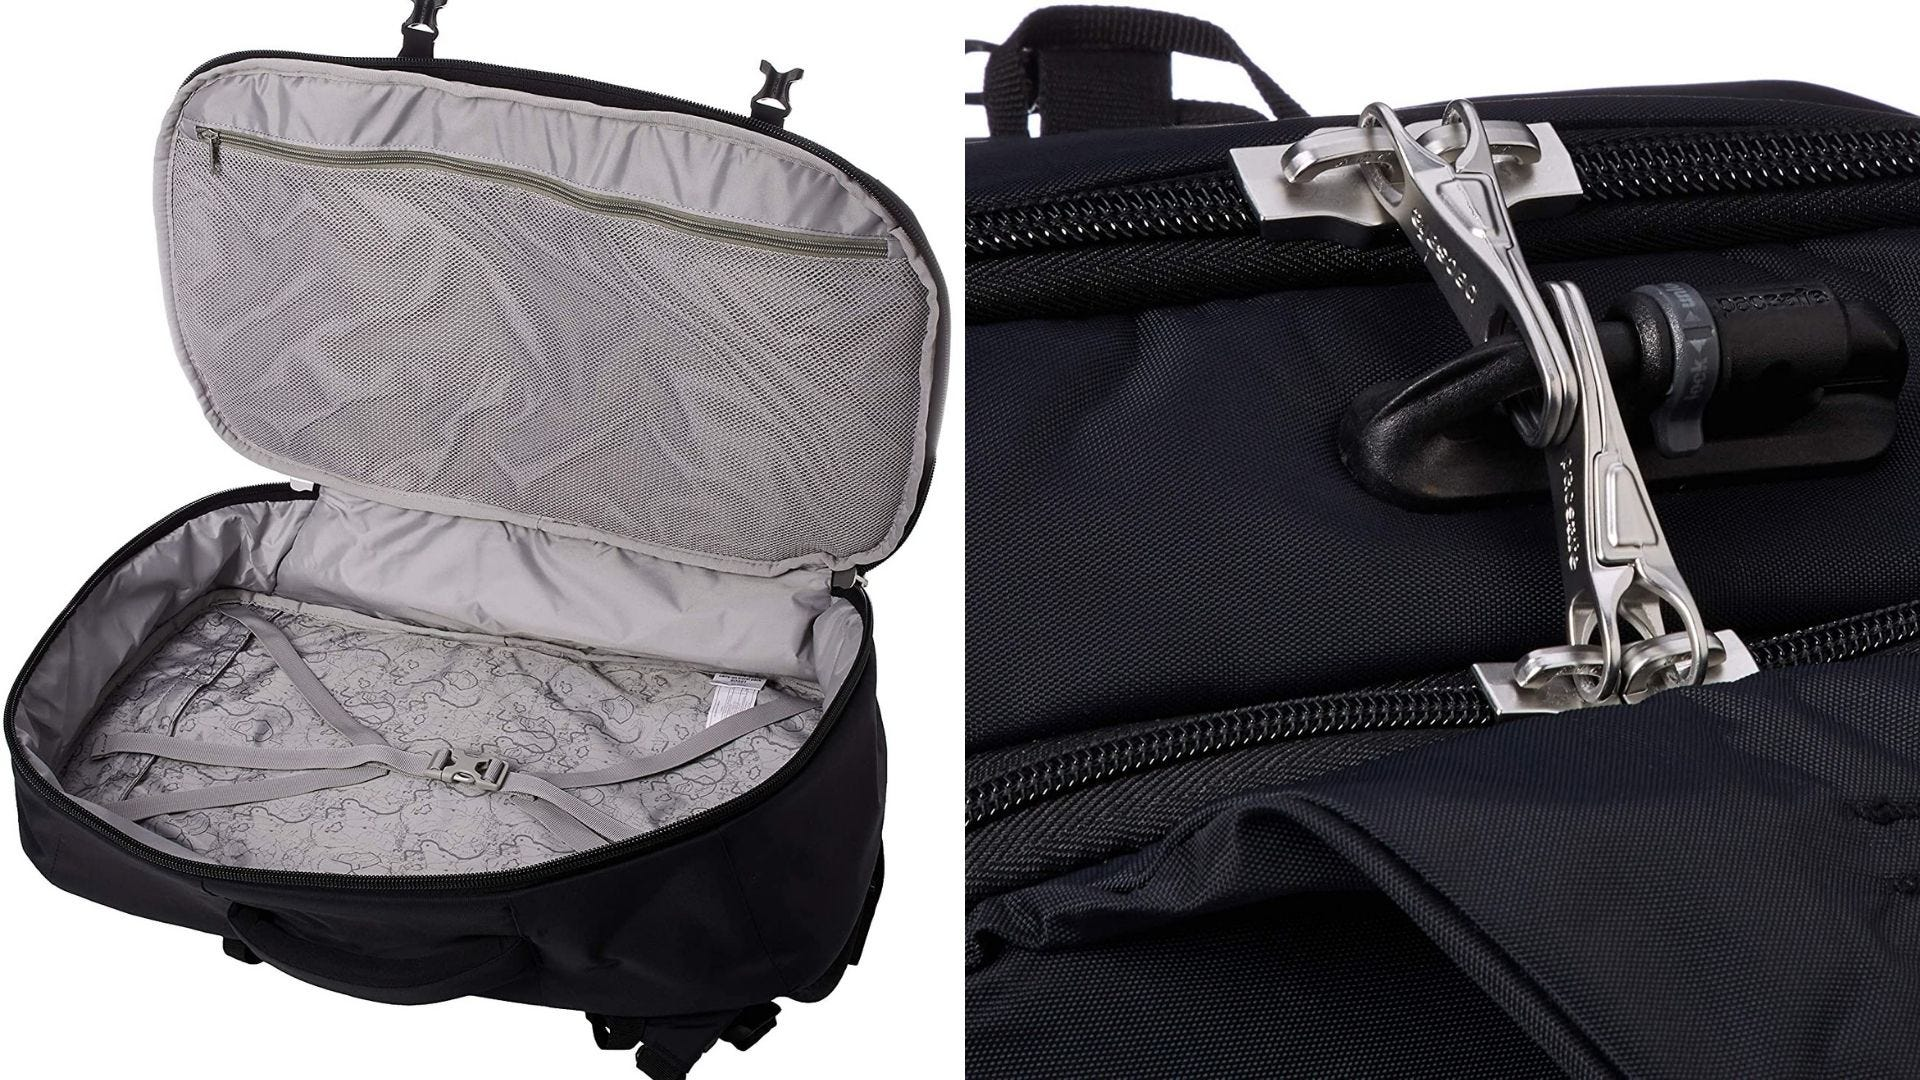 A backpack opened like a suitcase and a close up view of two zippers locked together